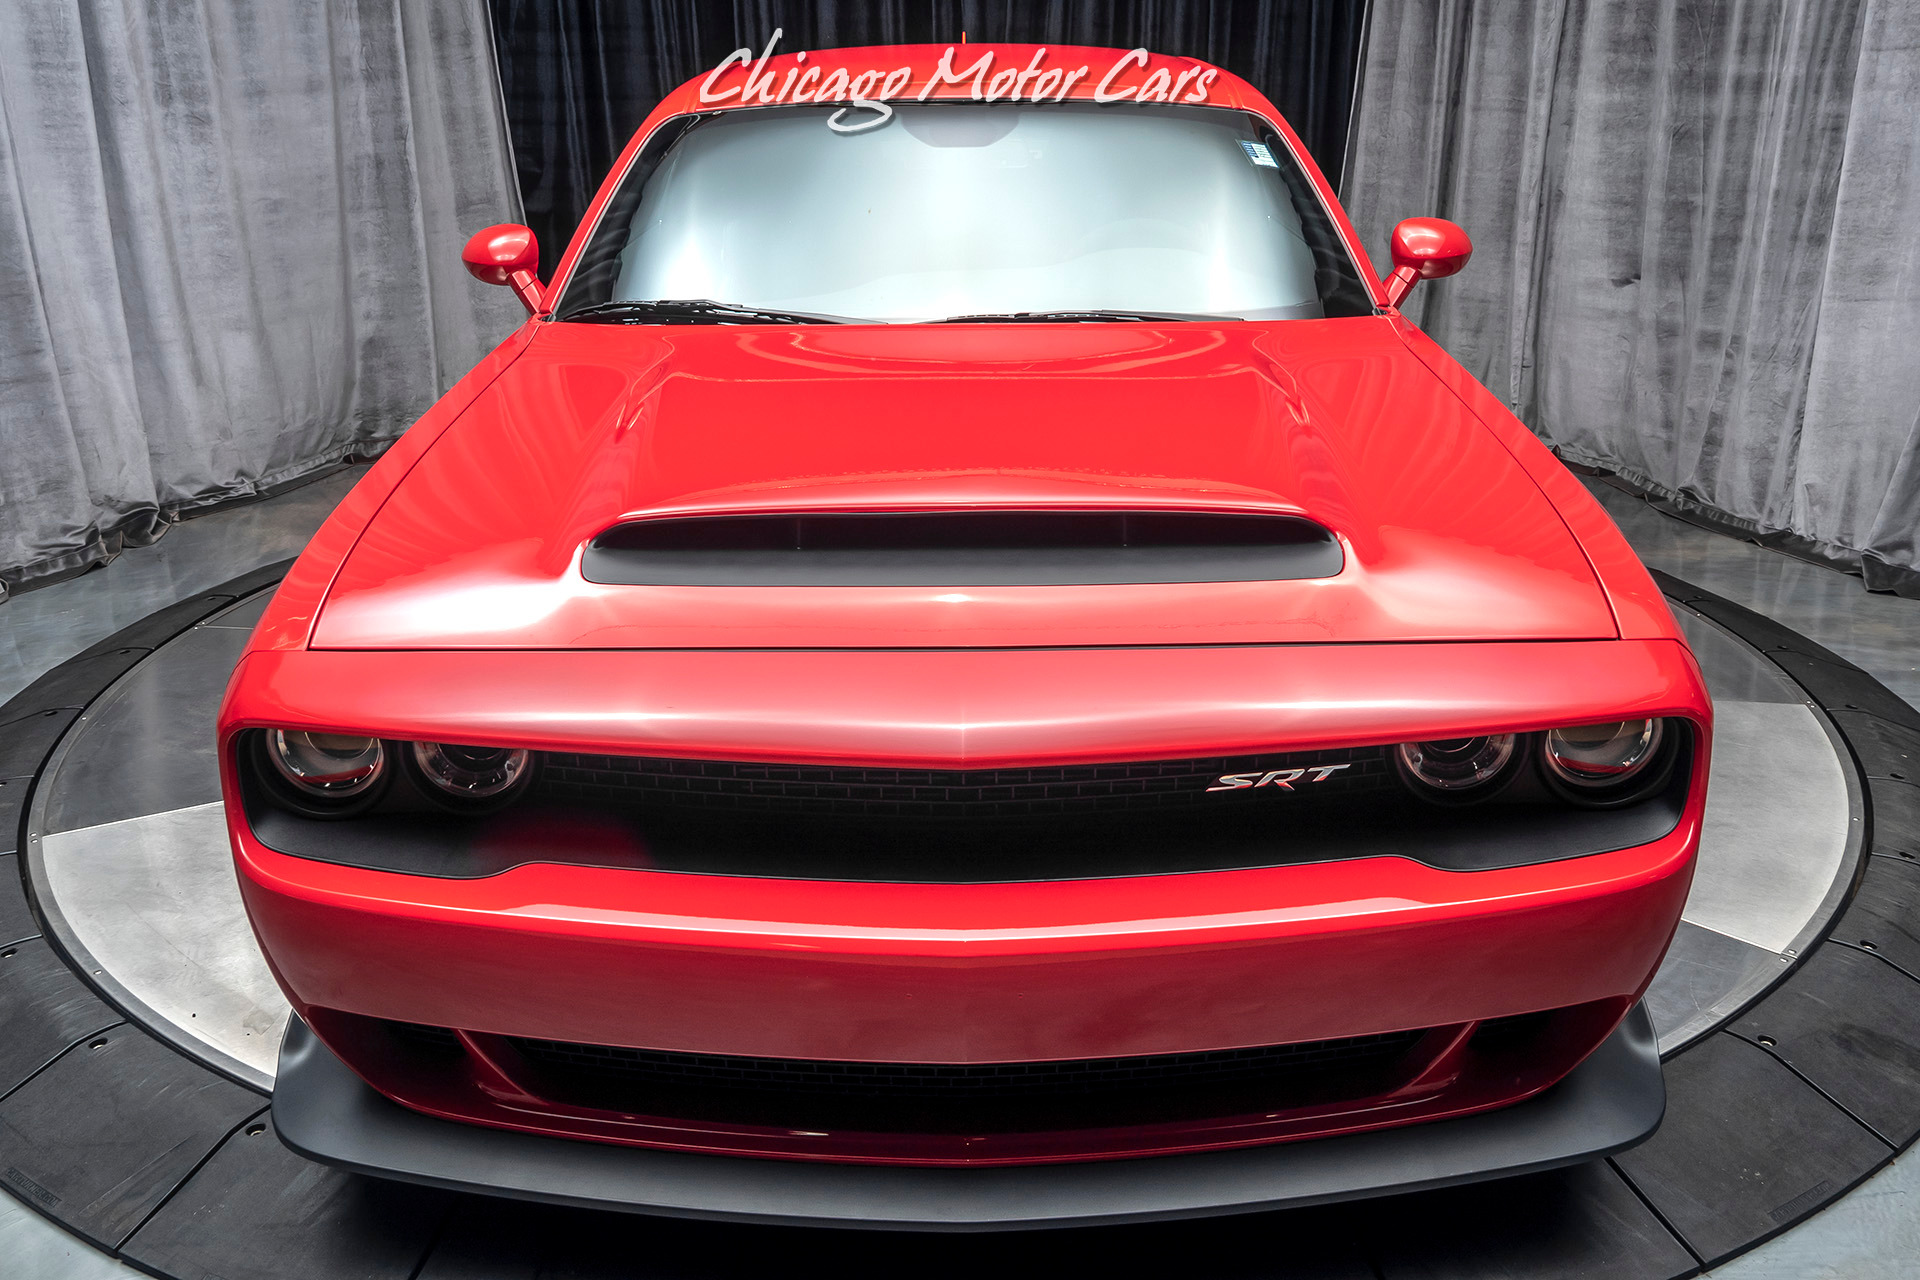 Used-2018-Dodge-Challenger-SRT-Demon-Coupe-Only-128-Miles-DEMON-Crate-INCLUDED